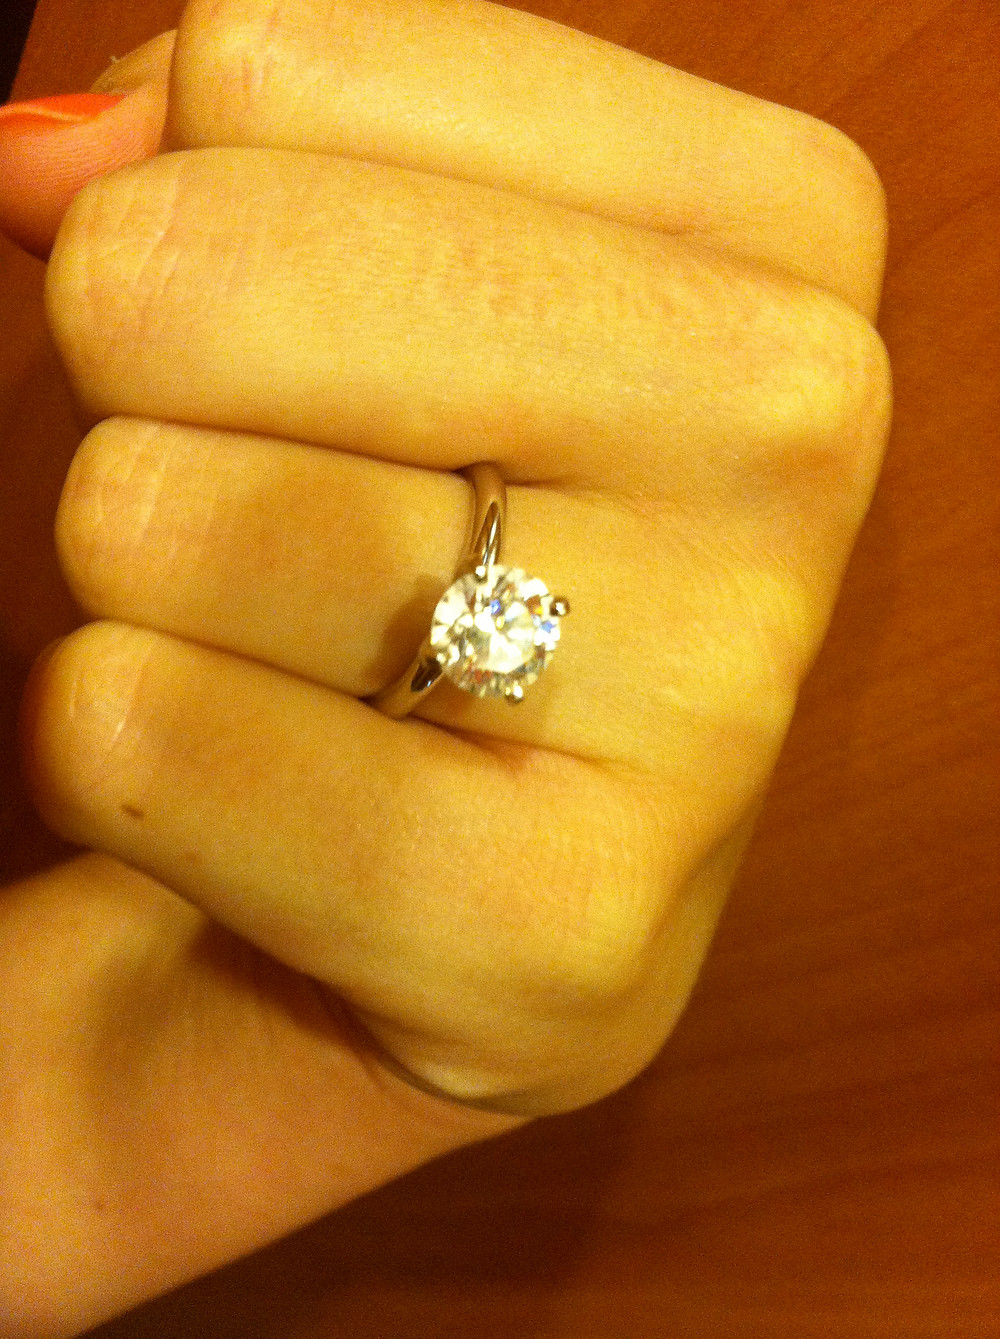 born-to-be-a-bride-diy-wedding-ring-cleaning-tips